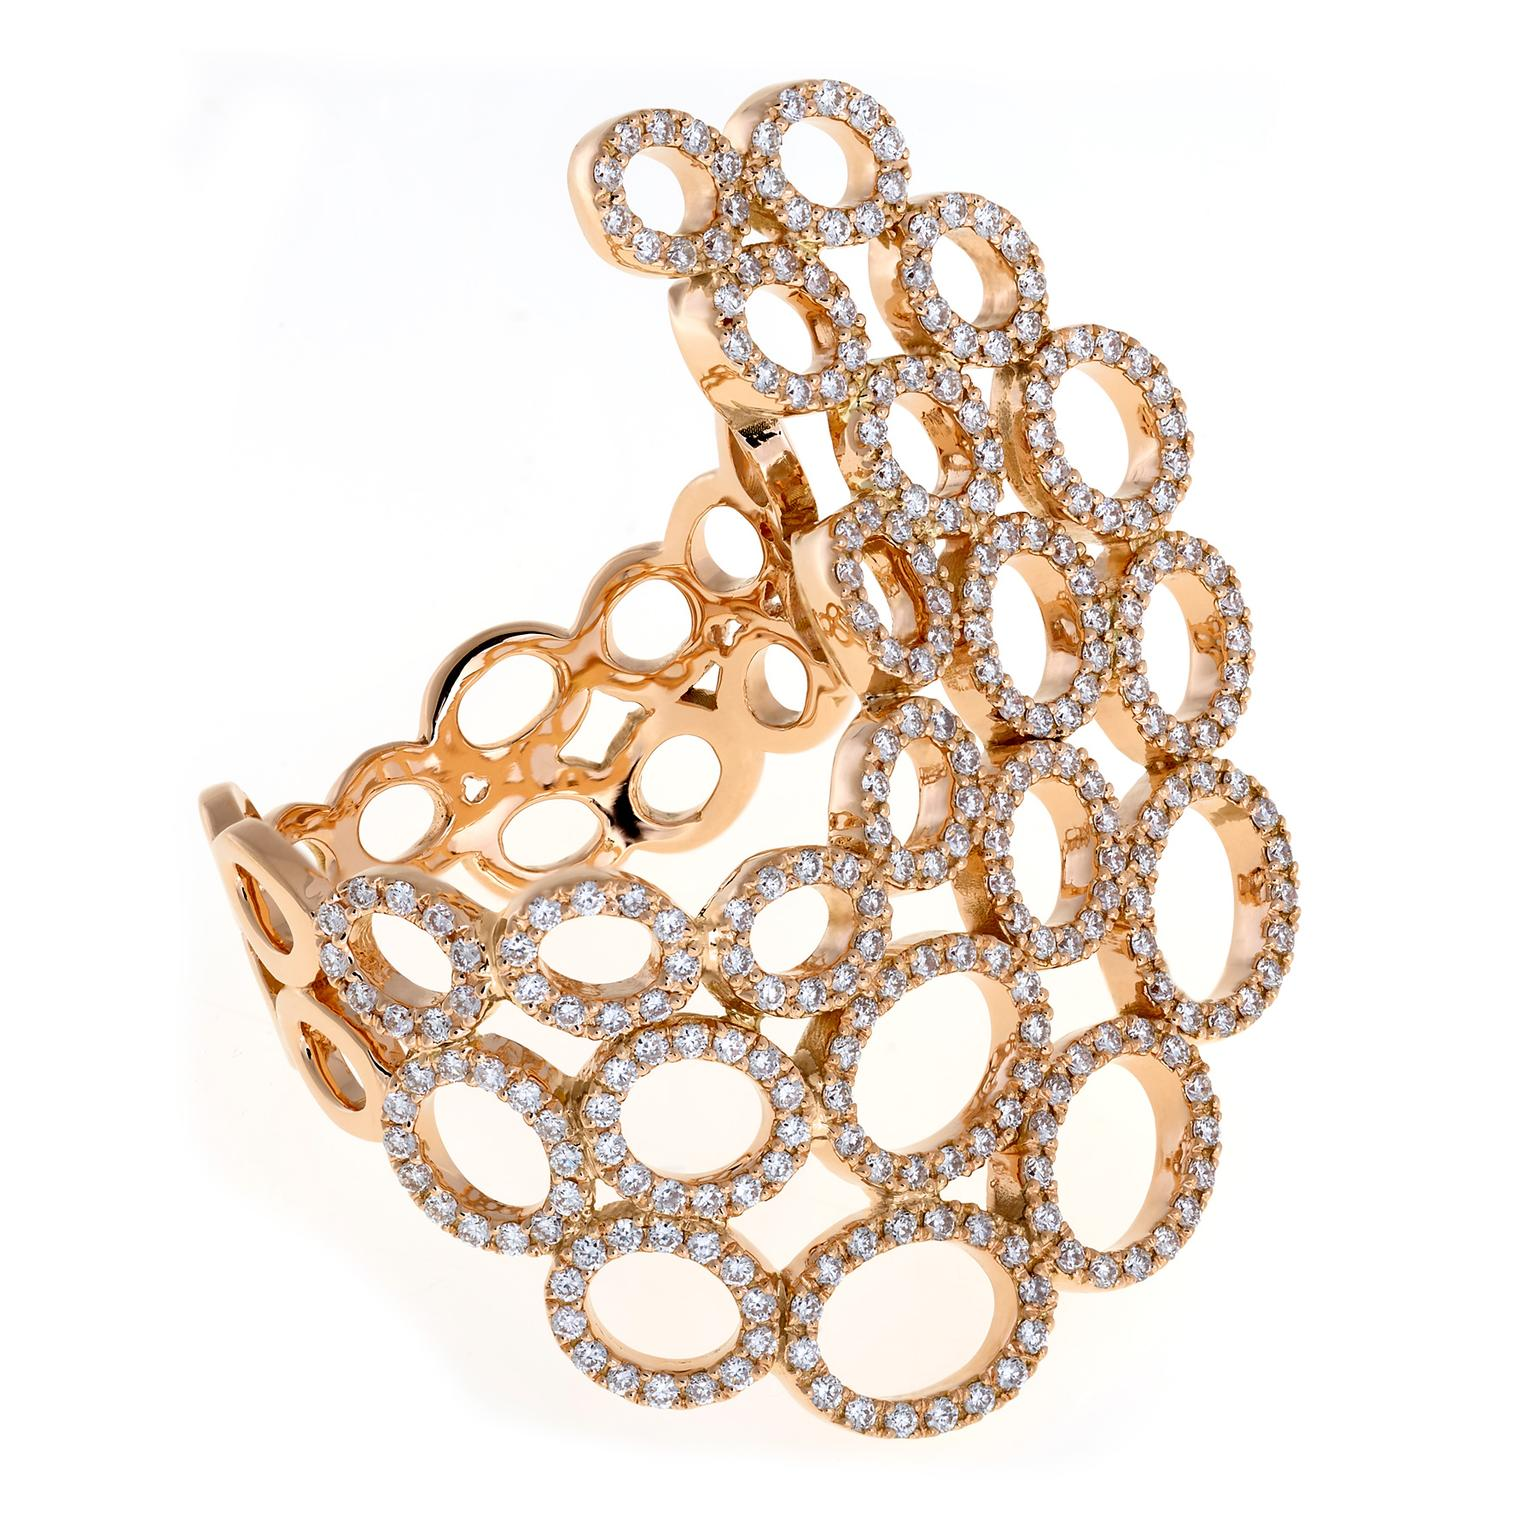 Christina Debs lace ring